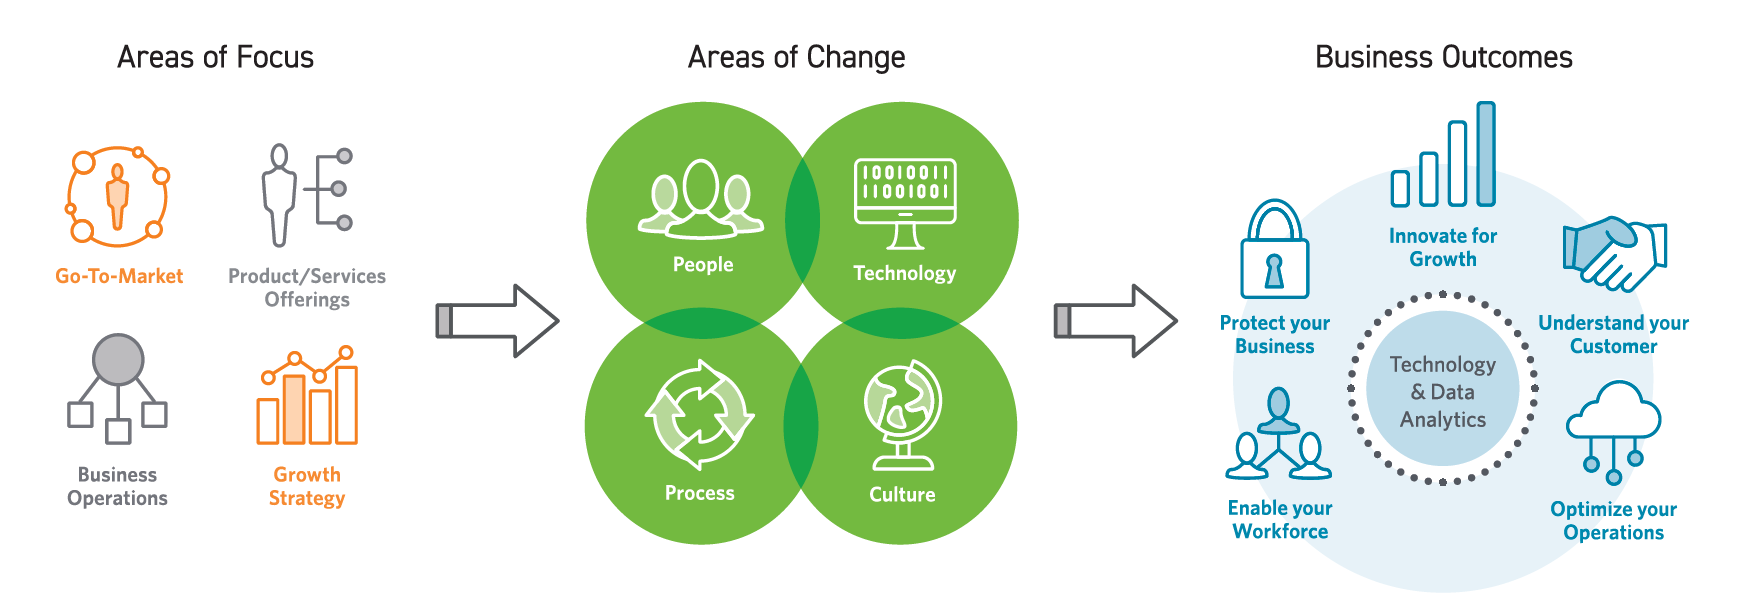 Digital Transformation Services Go To Market Optimization And Growth